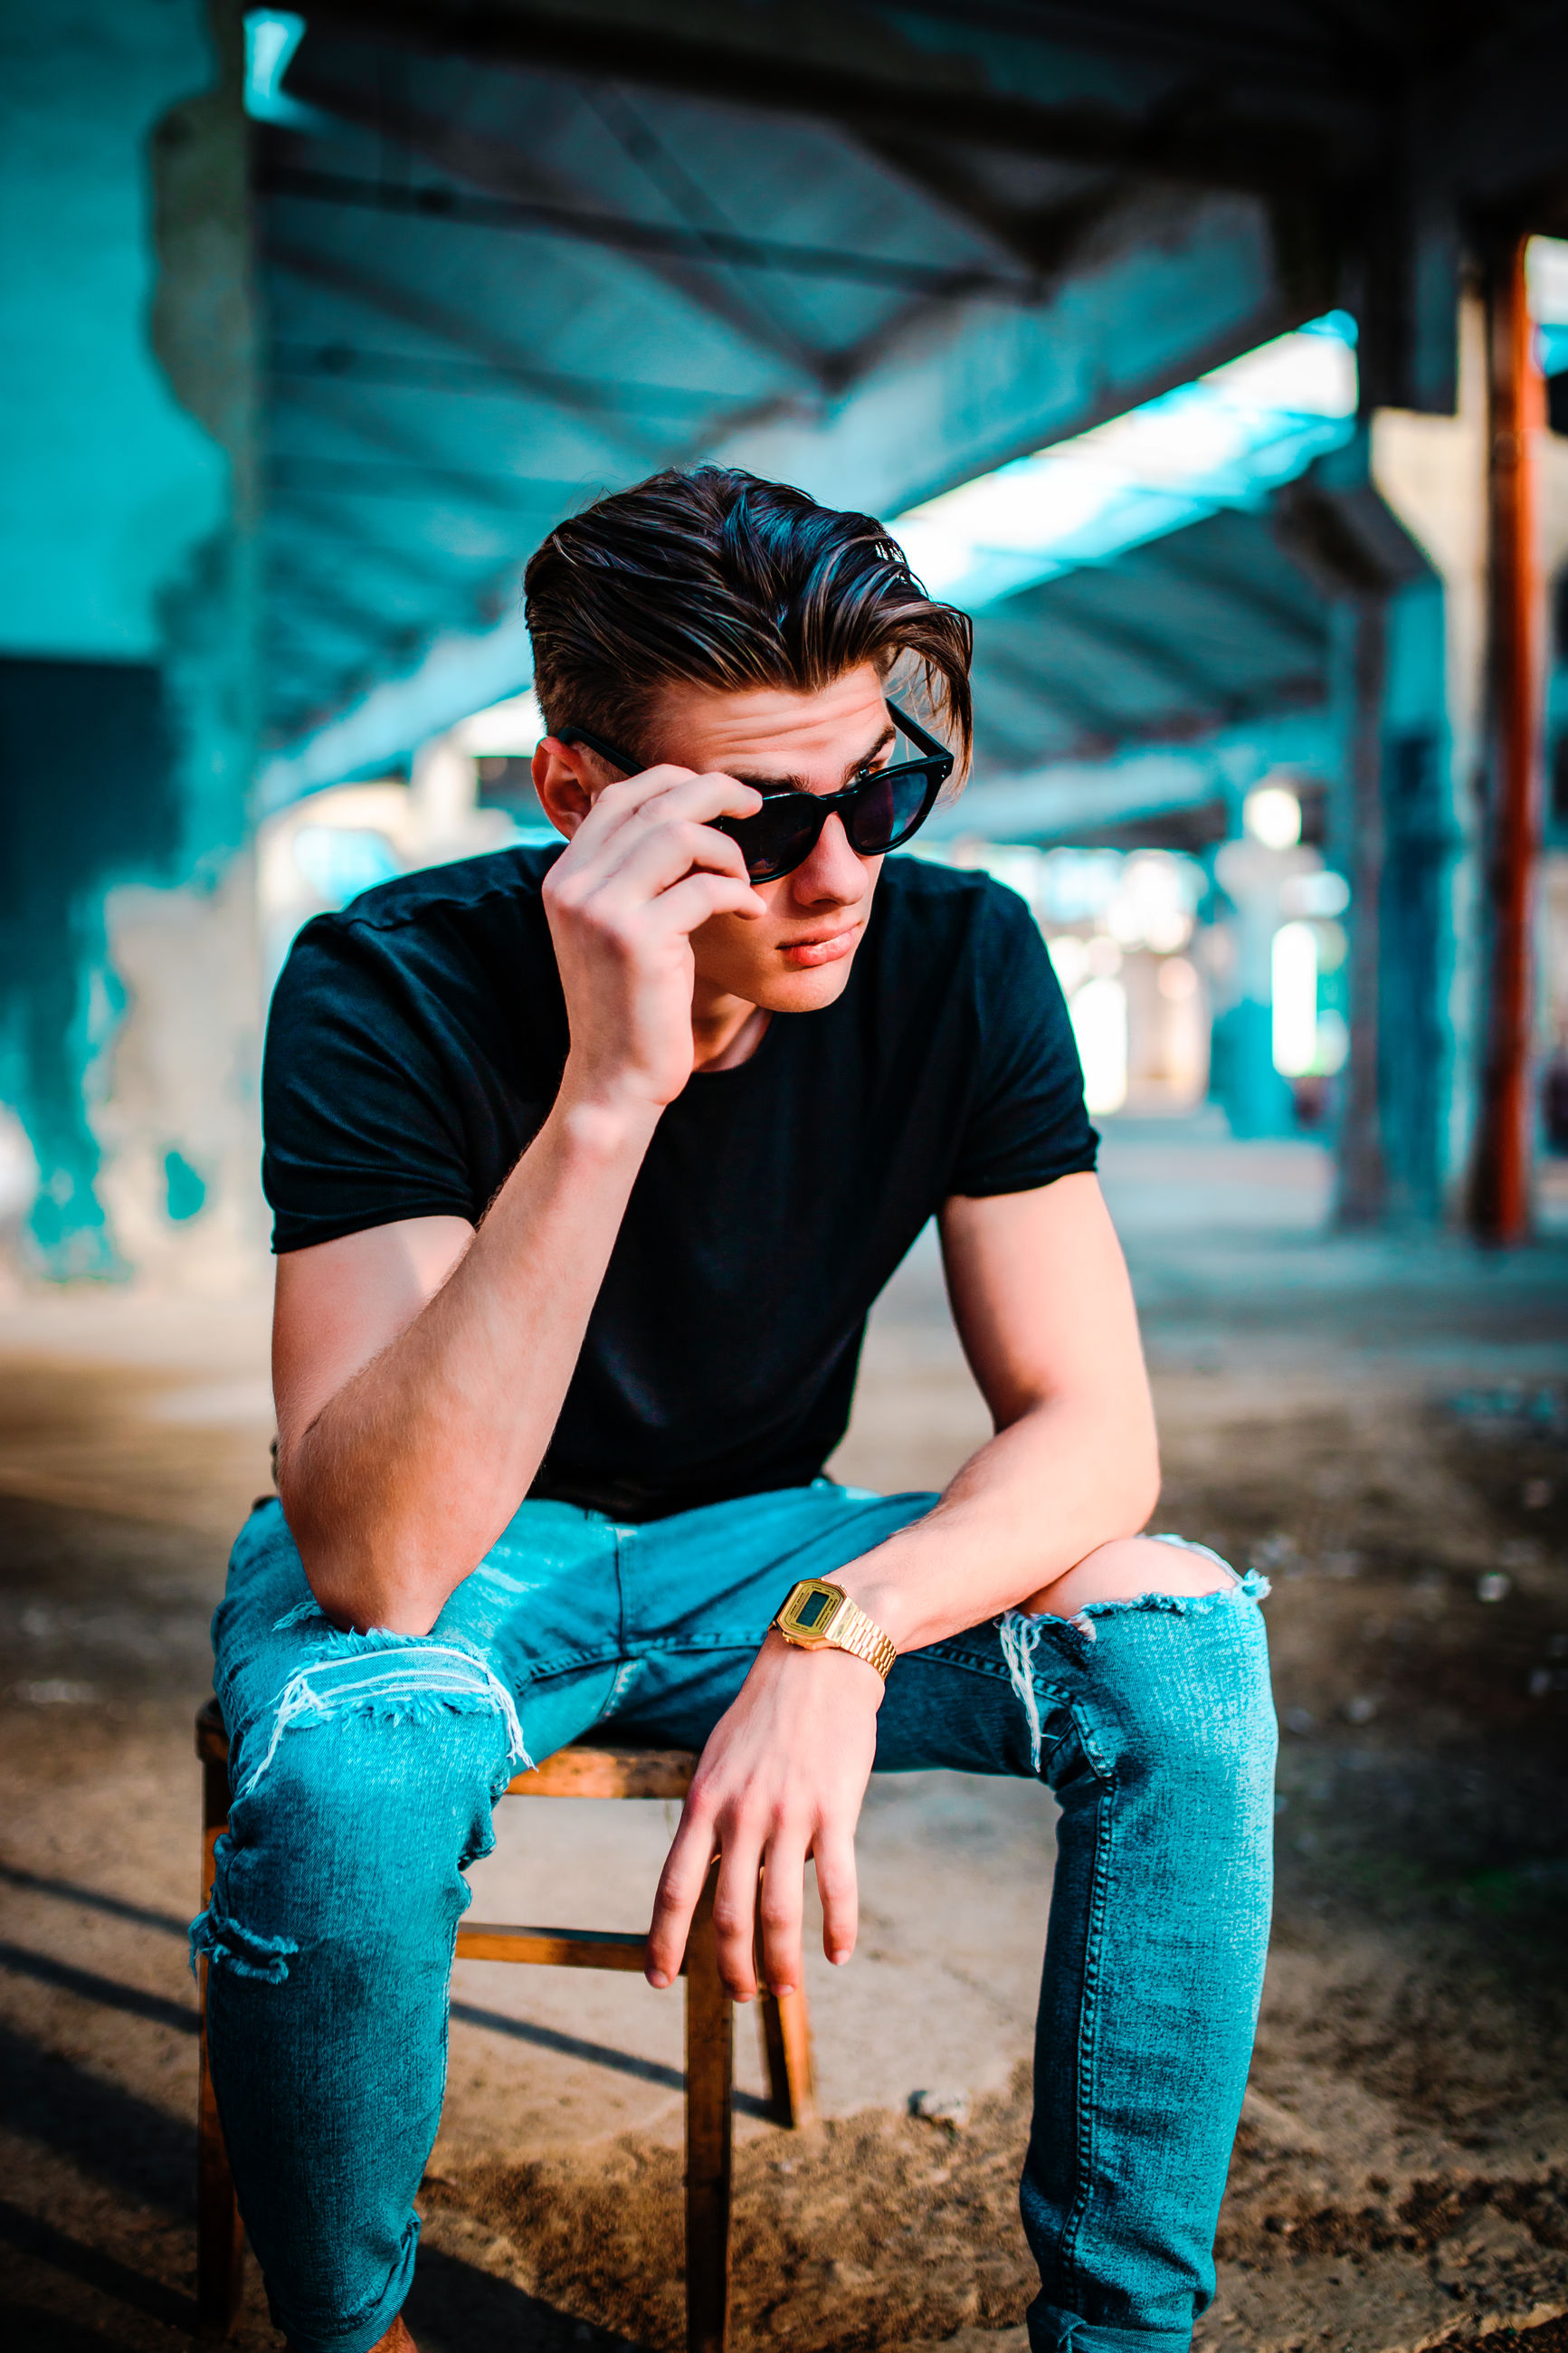 sitting, one person, young adult, fashion, real people, glasses, casual clothing, young men, lifestyles, sunglasses, leisure activity, focus on foreground, architecture, front view, full length, three quarter length, built structure, outdoors, architectural column